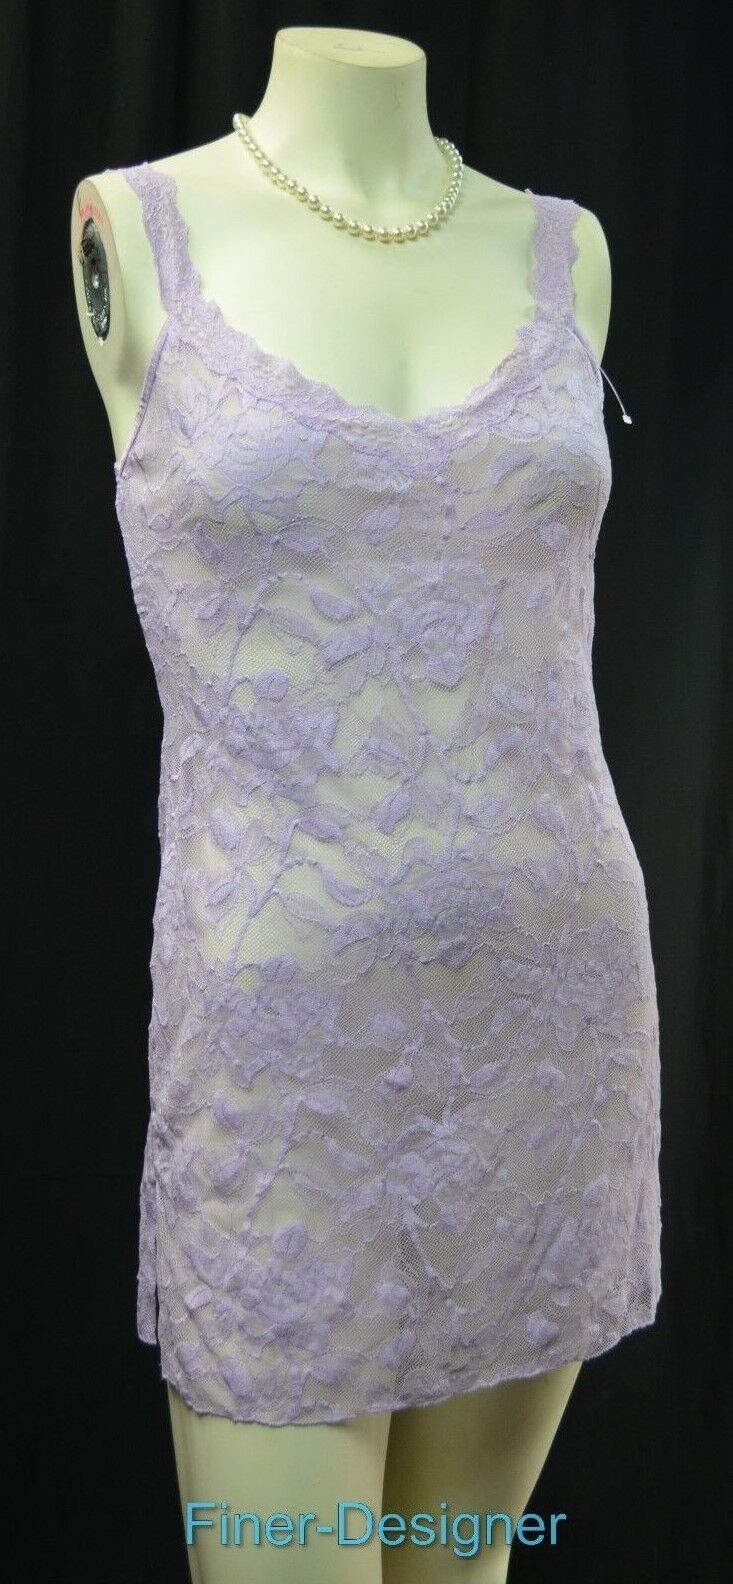 VICTORIA'S SECRET Nightie Cami Sexy teddie stretch purplec purple lace Size M NEW